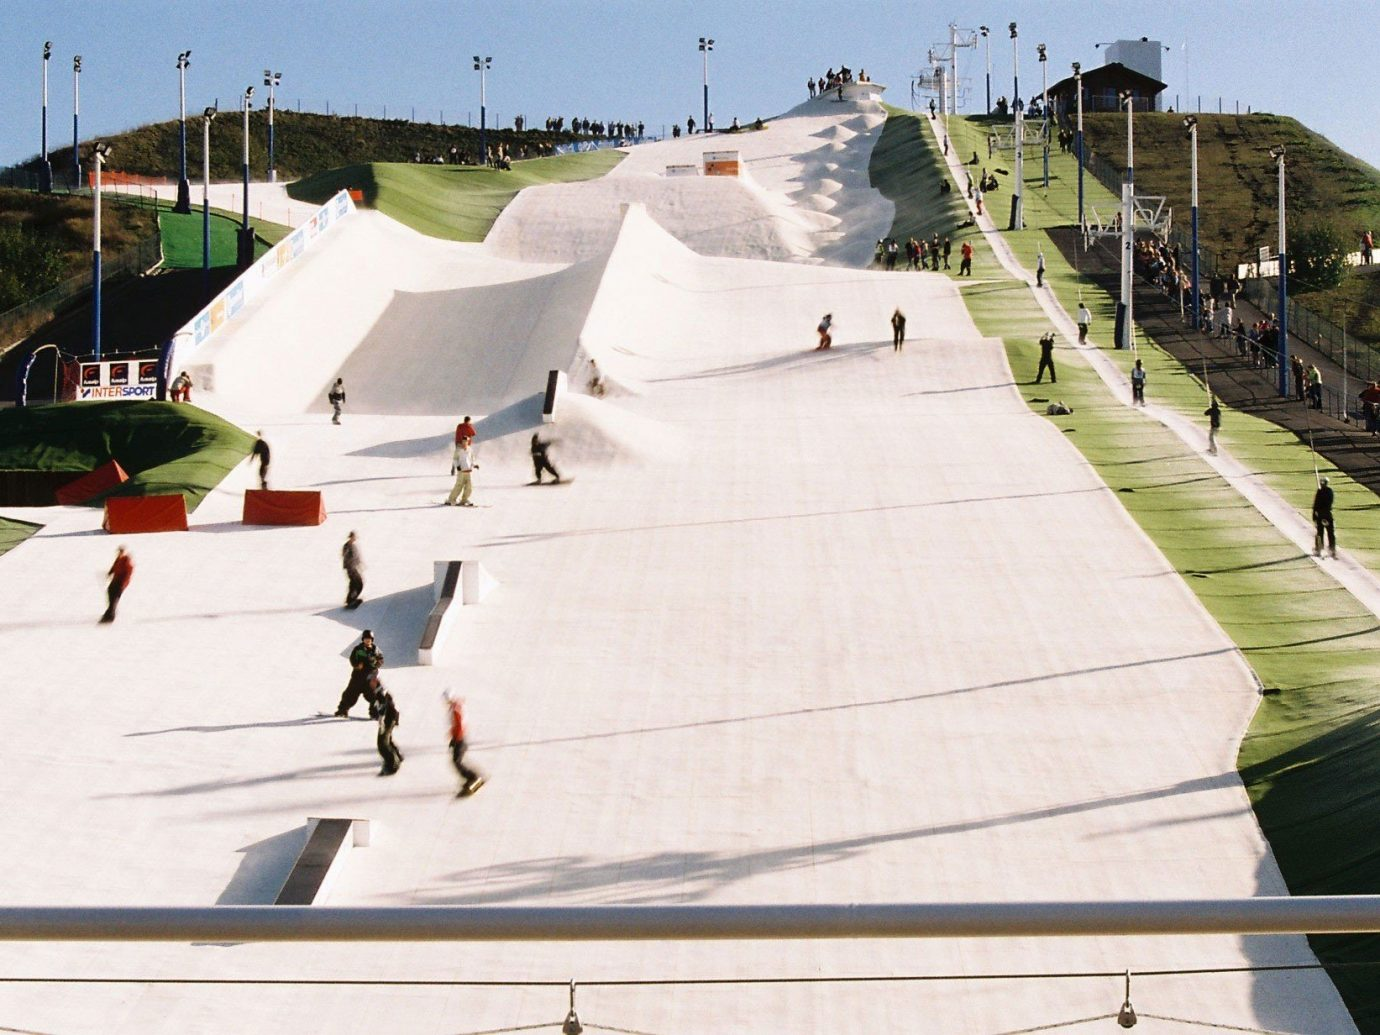 Trip Ideas sky outdoor outdoor recreation skateboarding roof